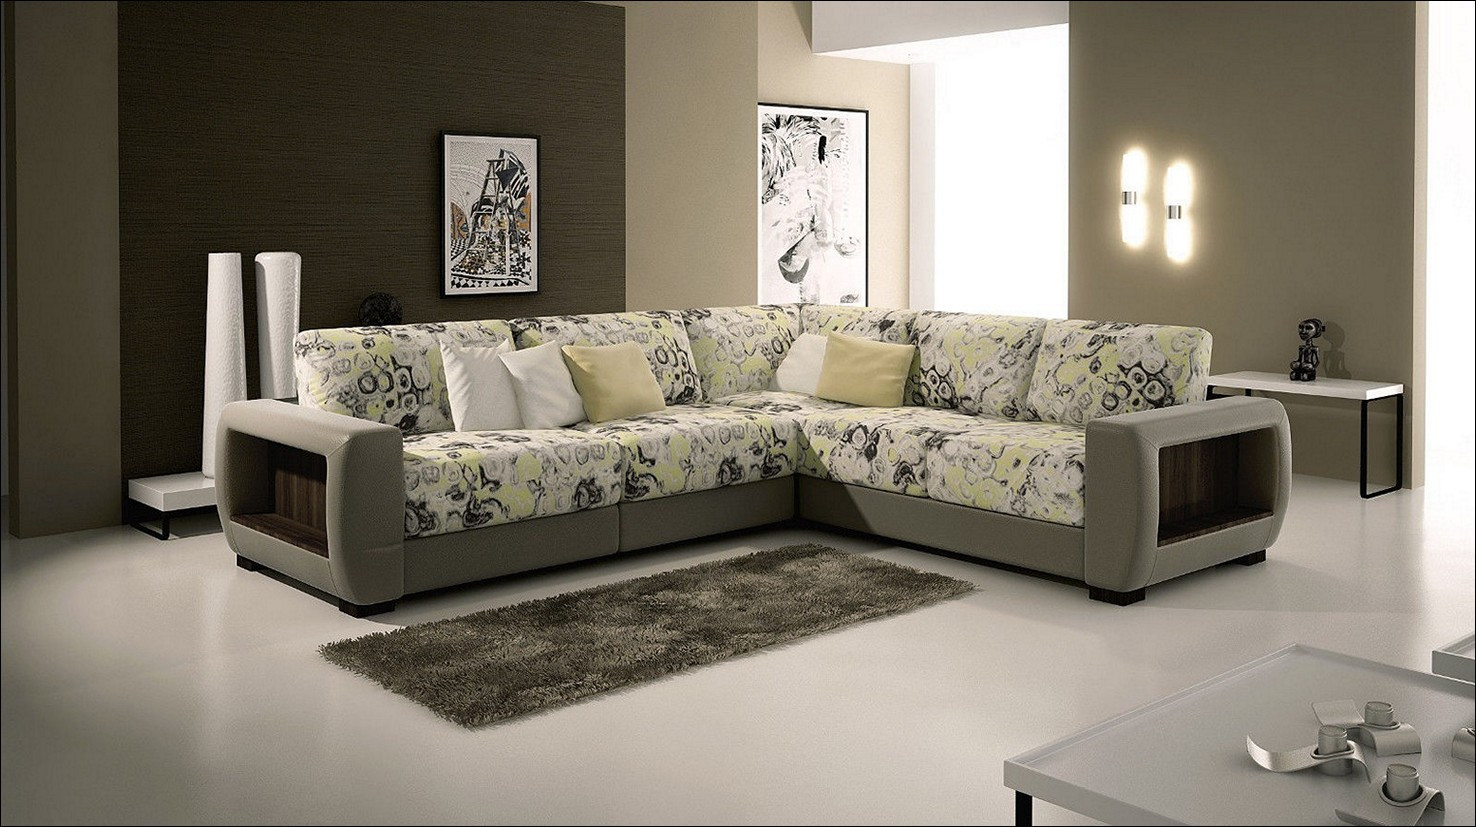 Best ideas about Large Wall Art For Living Room . Save or Pin Decorating large wall living room oversized wall art Now.